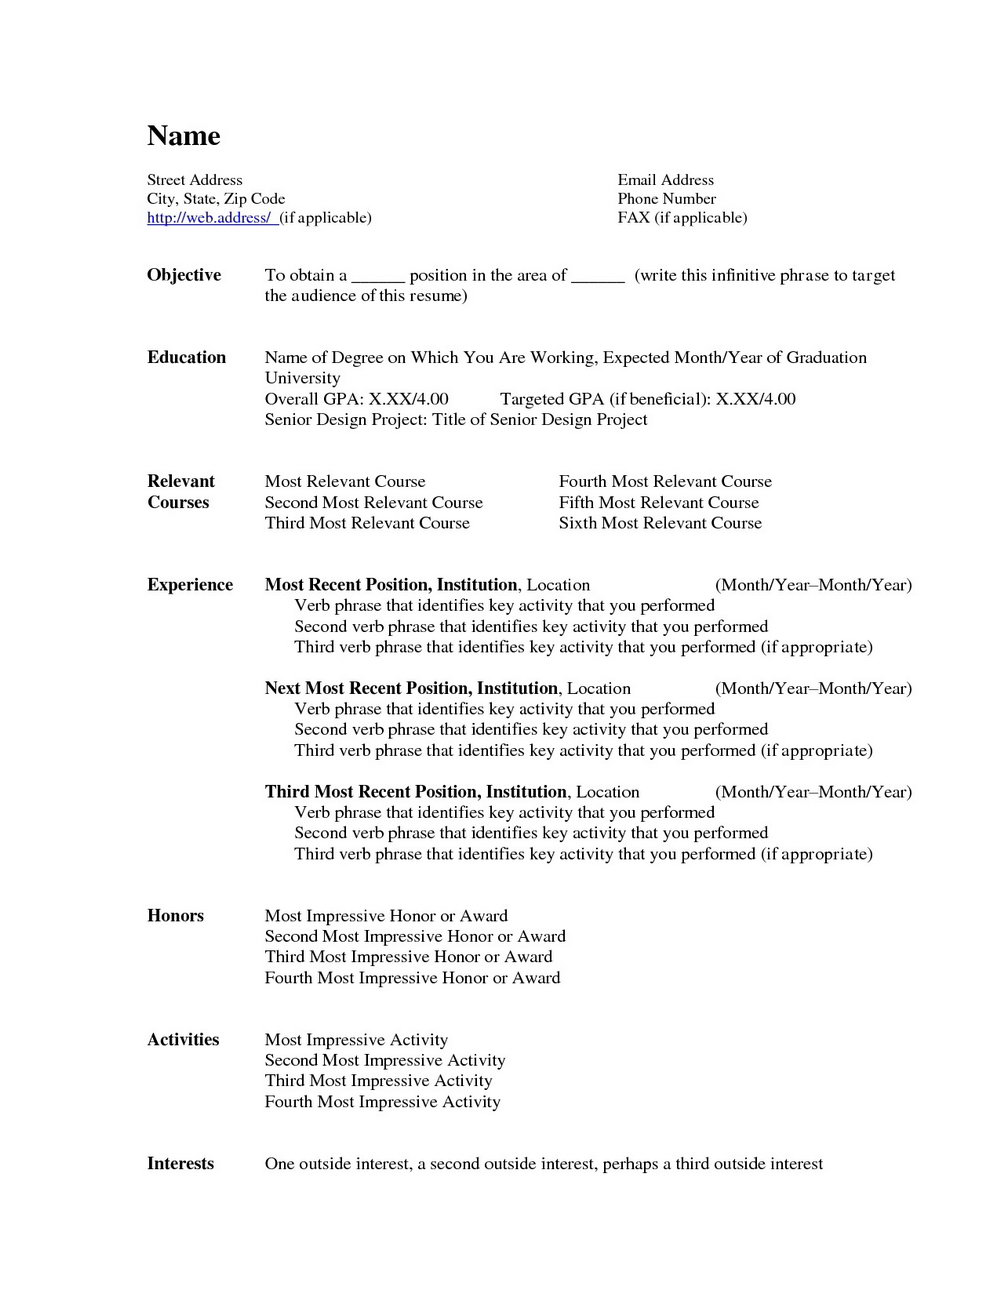 Resume Templates For Word 2003 Free